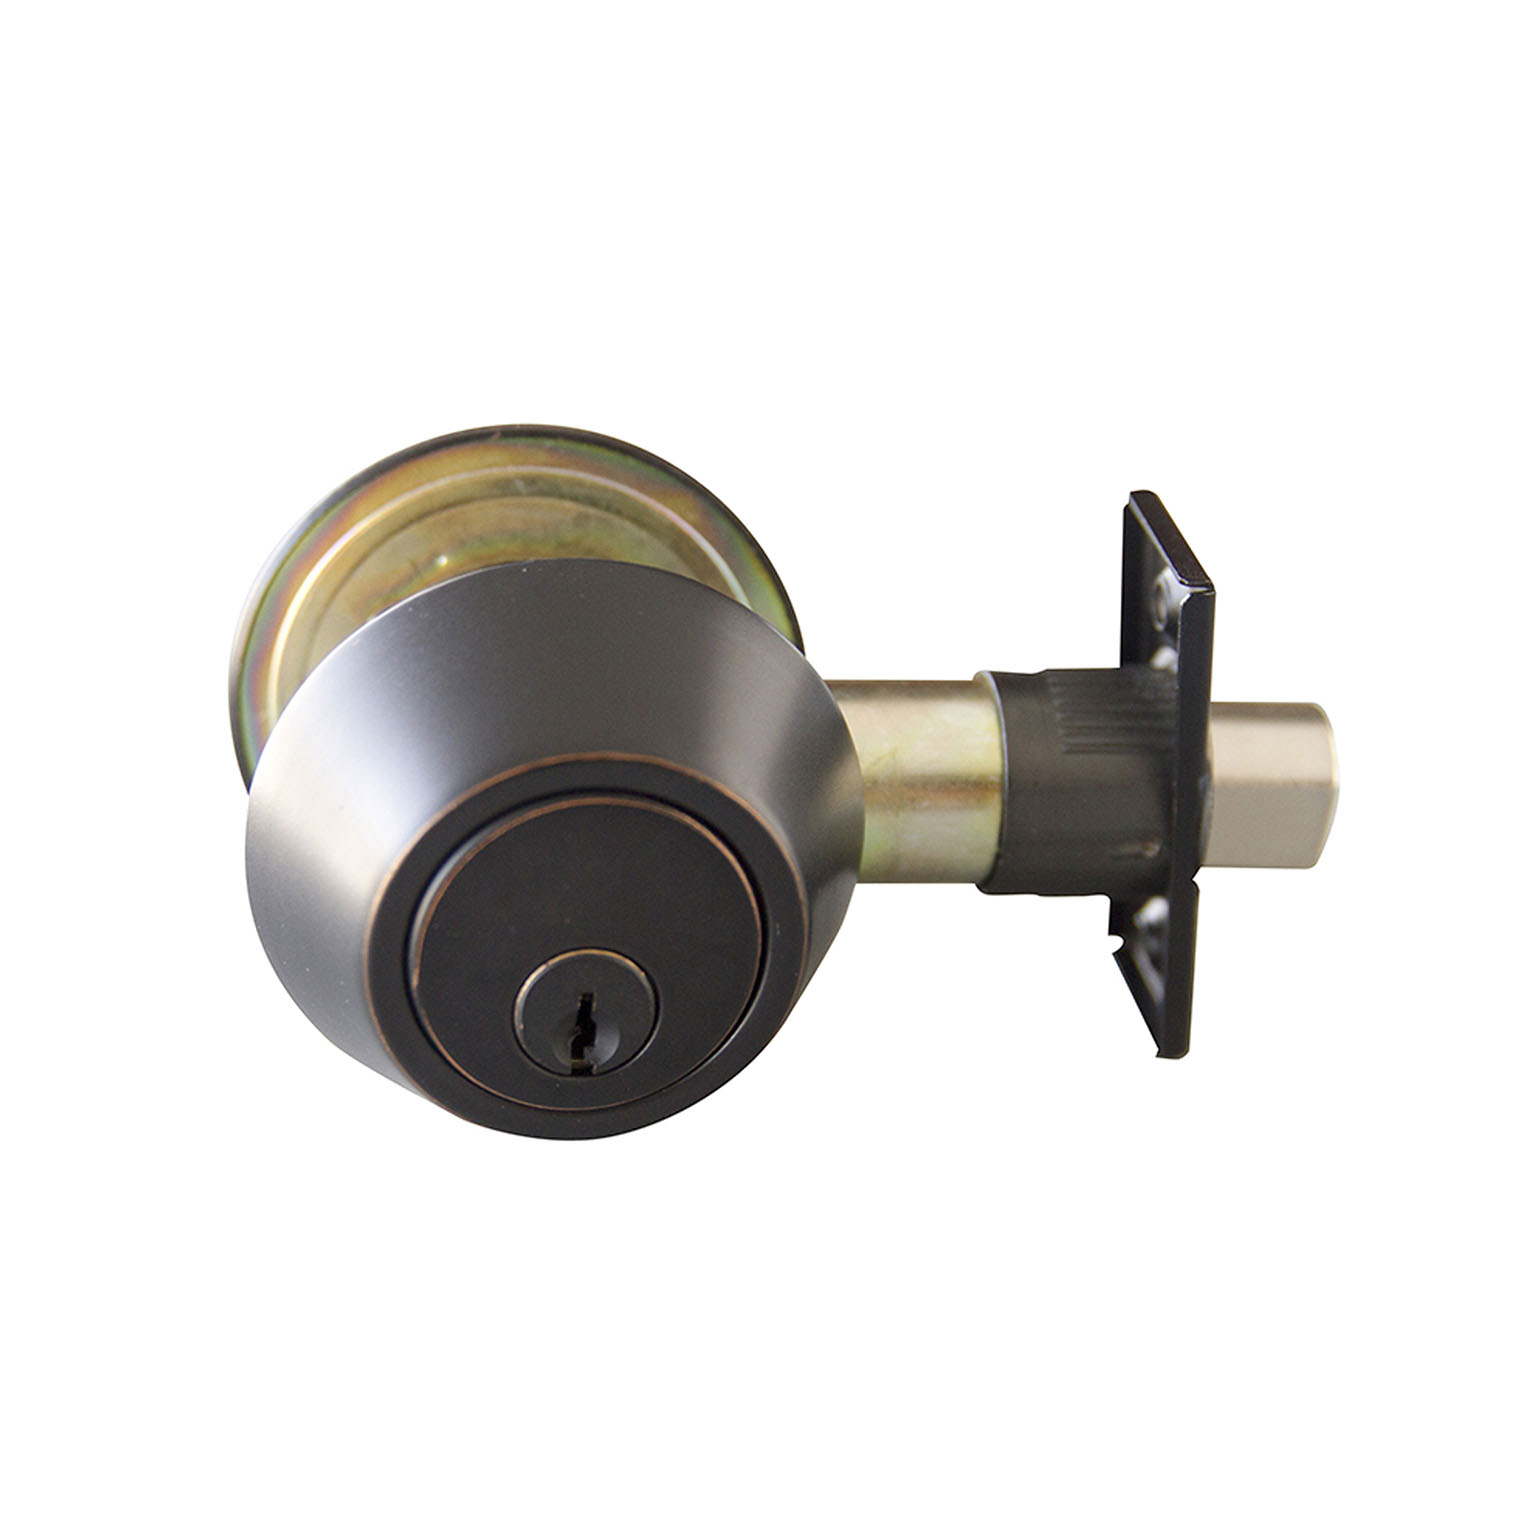 Design House Double Cylinder Deadbolt, Oil Rubbed Bronze - 727479